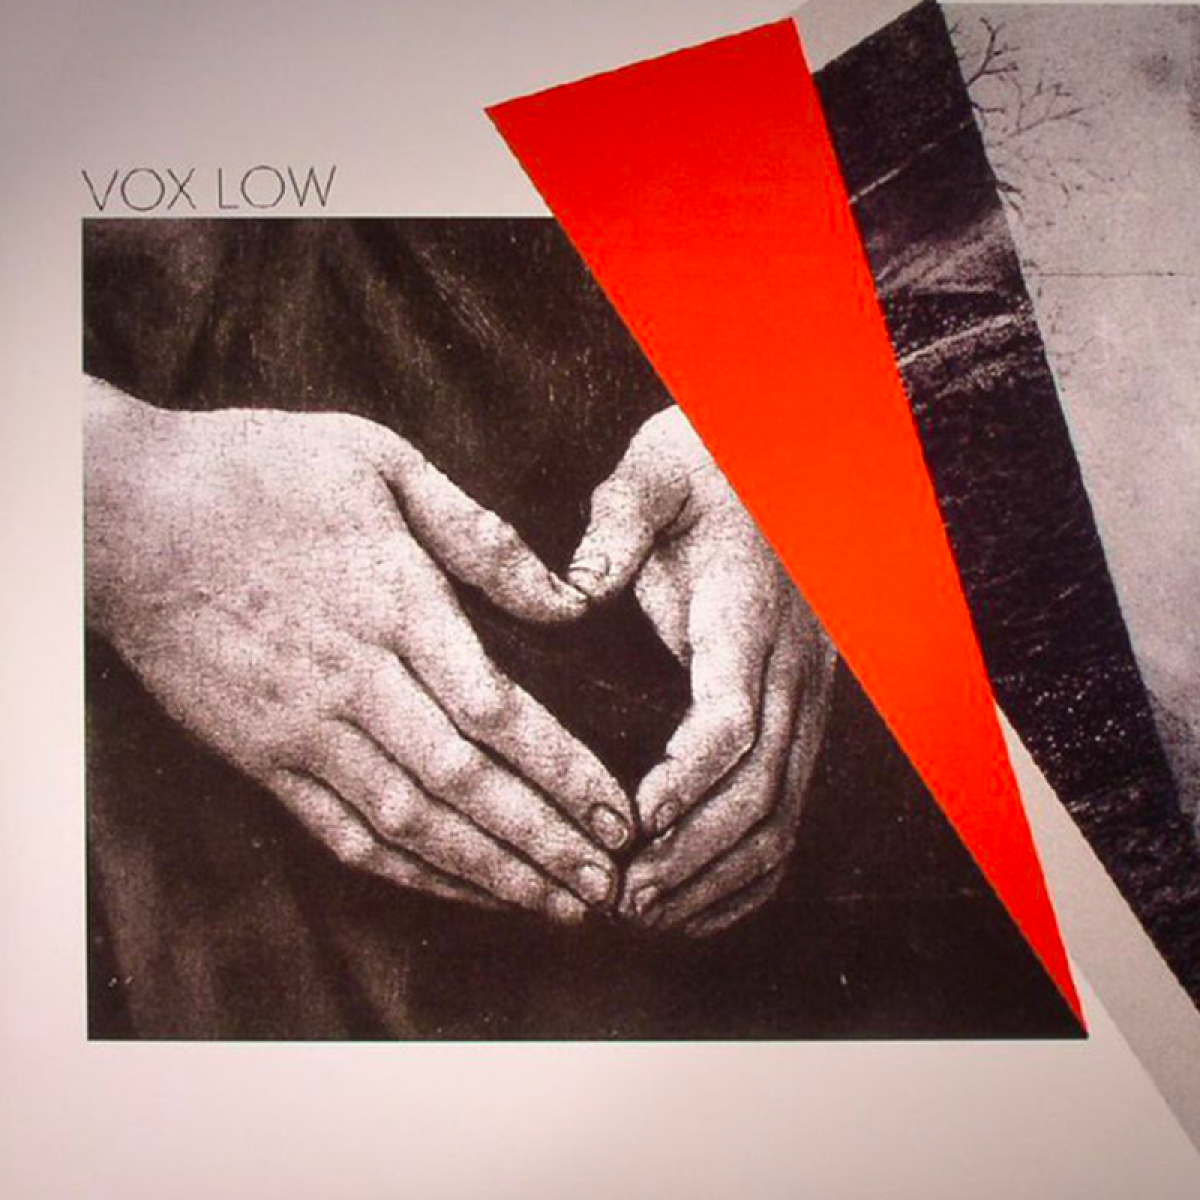 Vox Low<br />«Something is Wrong» EP<br />2015 Correspondant<br />Recordings/Producers